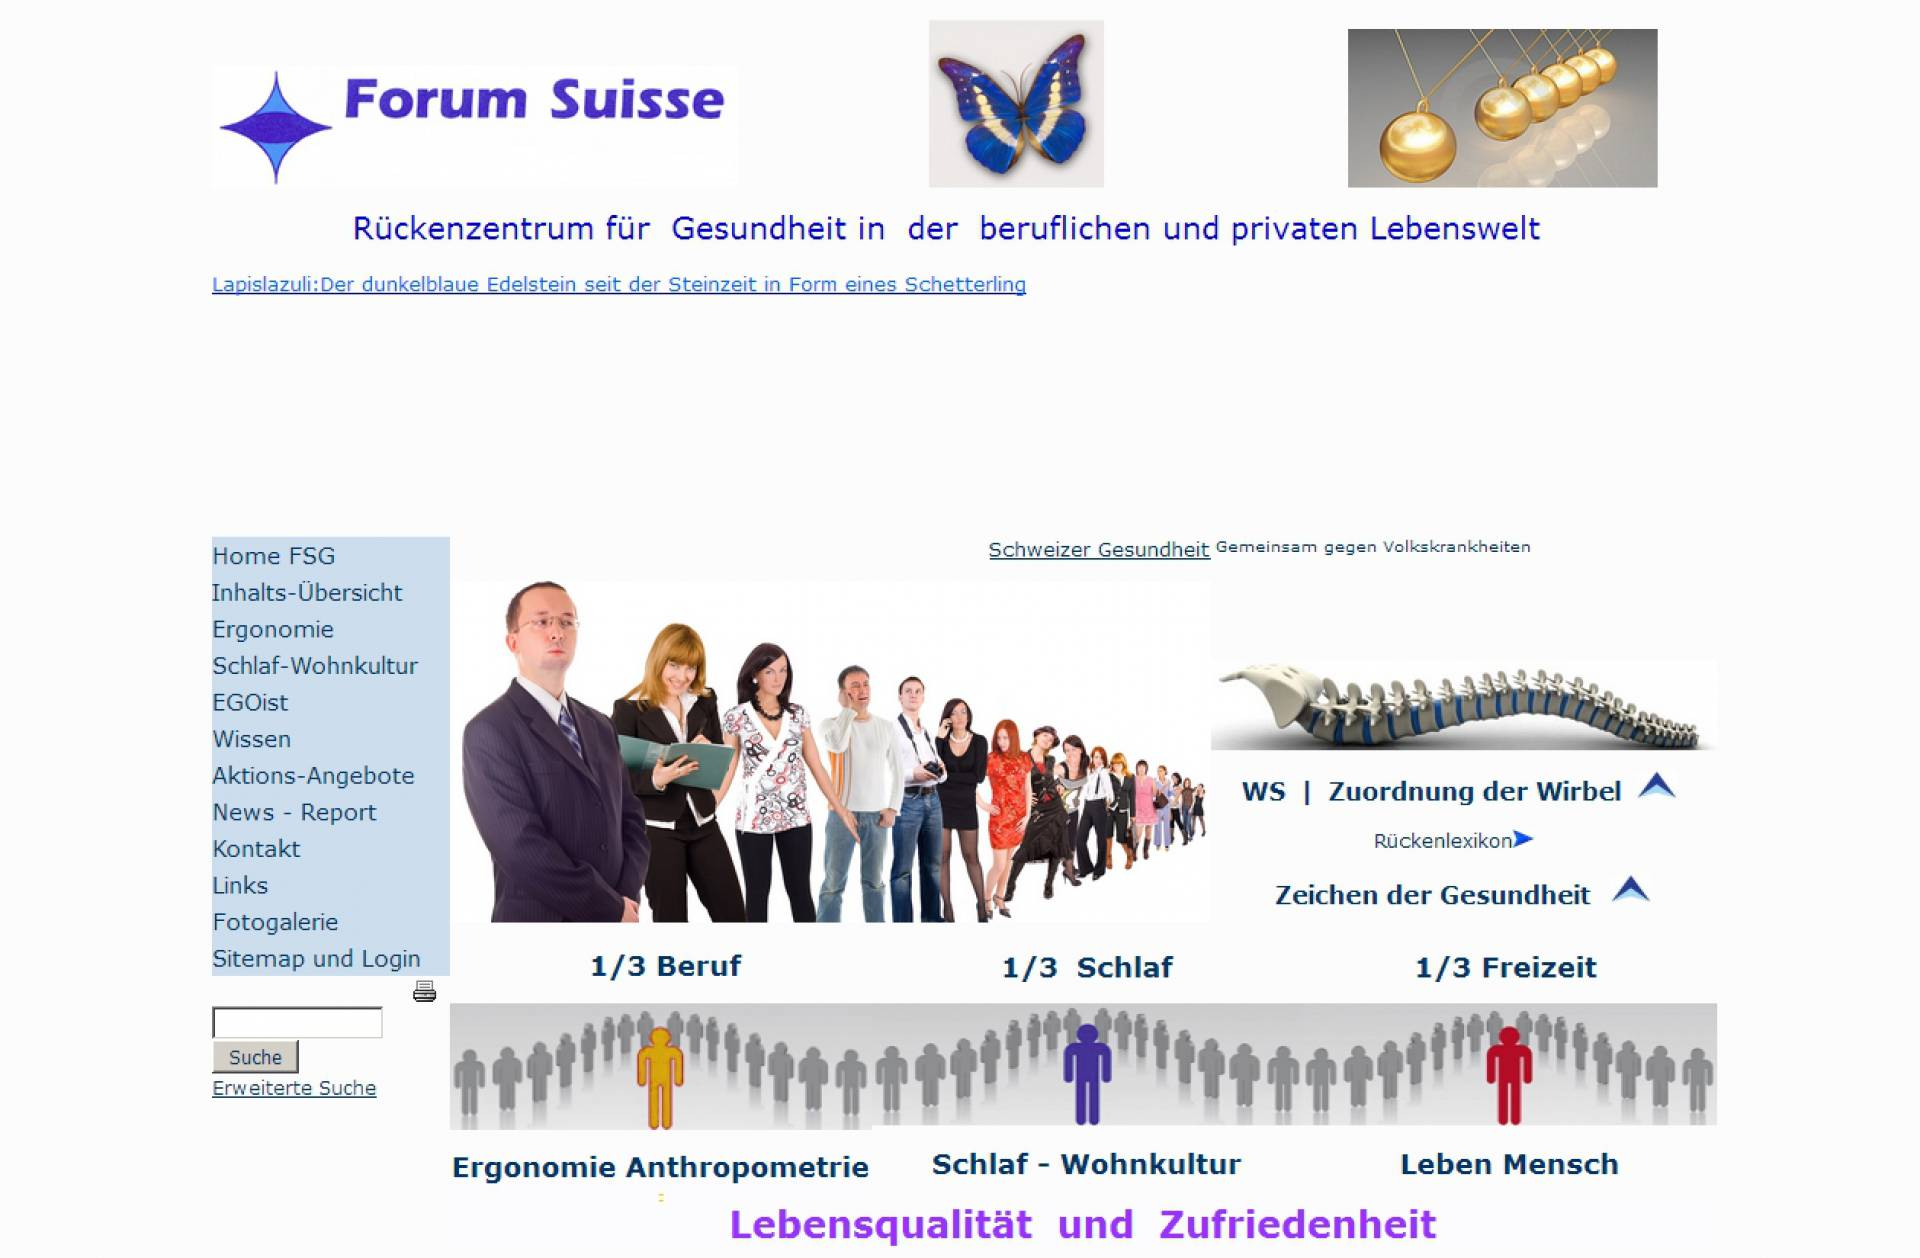 CH4055 - Forum Suisse Group